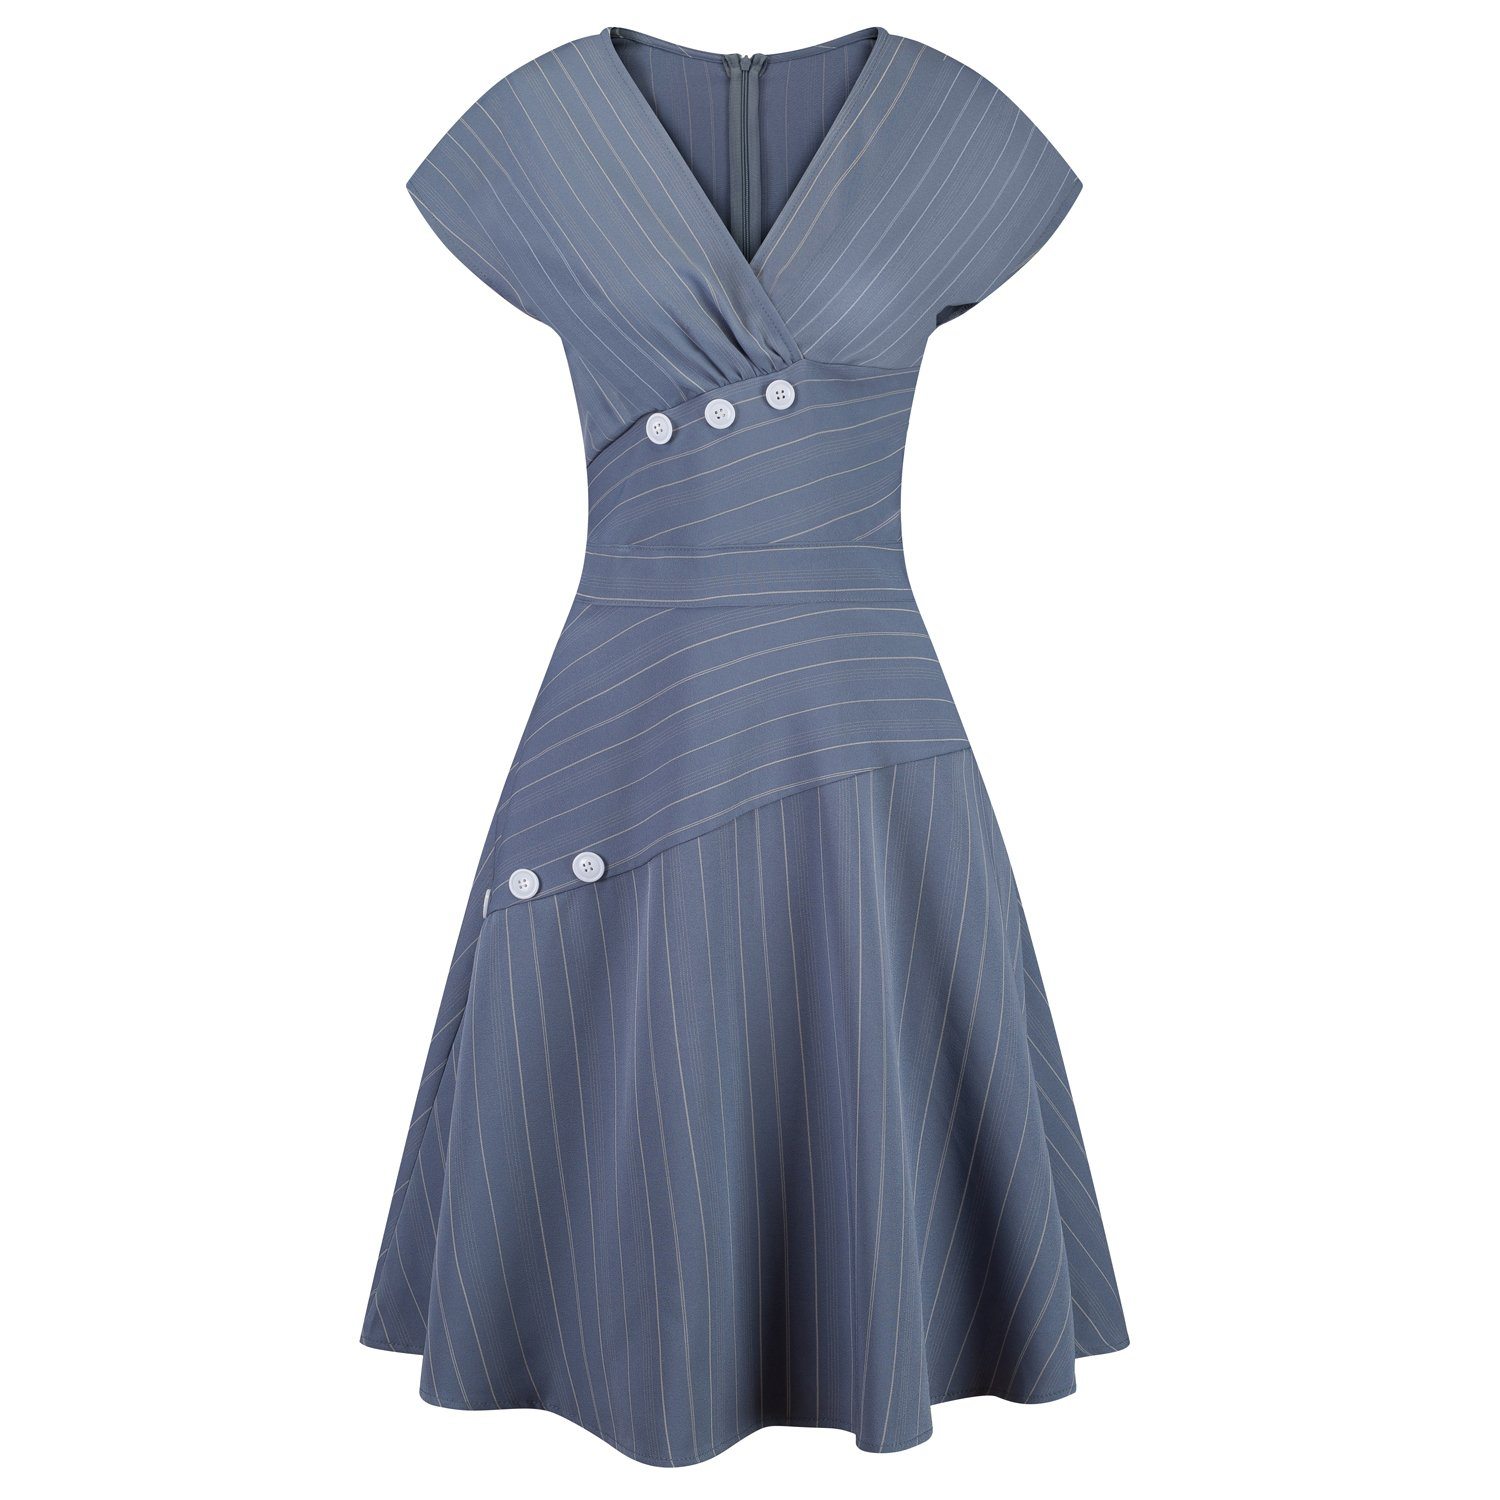 9545fee7f4 This vintage inspired dress features an elegant V shaped neckline